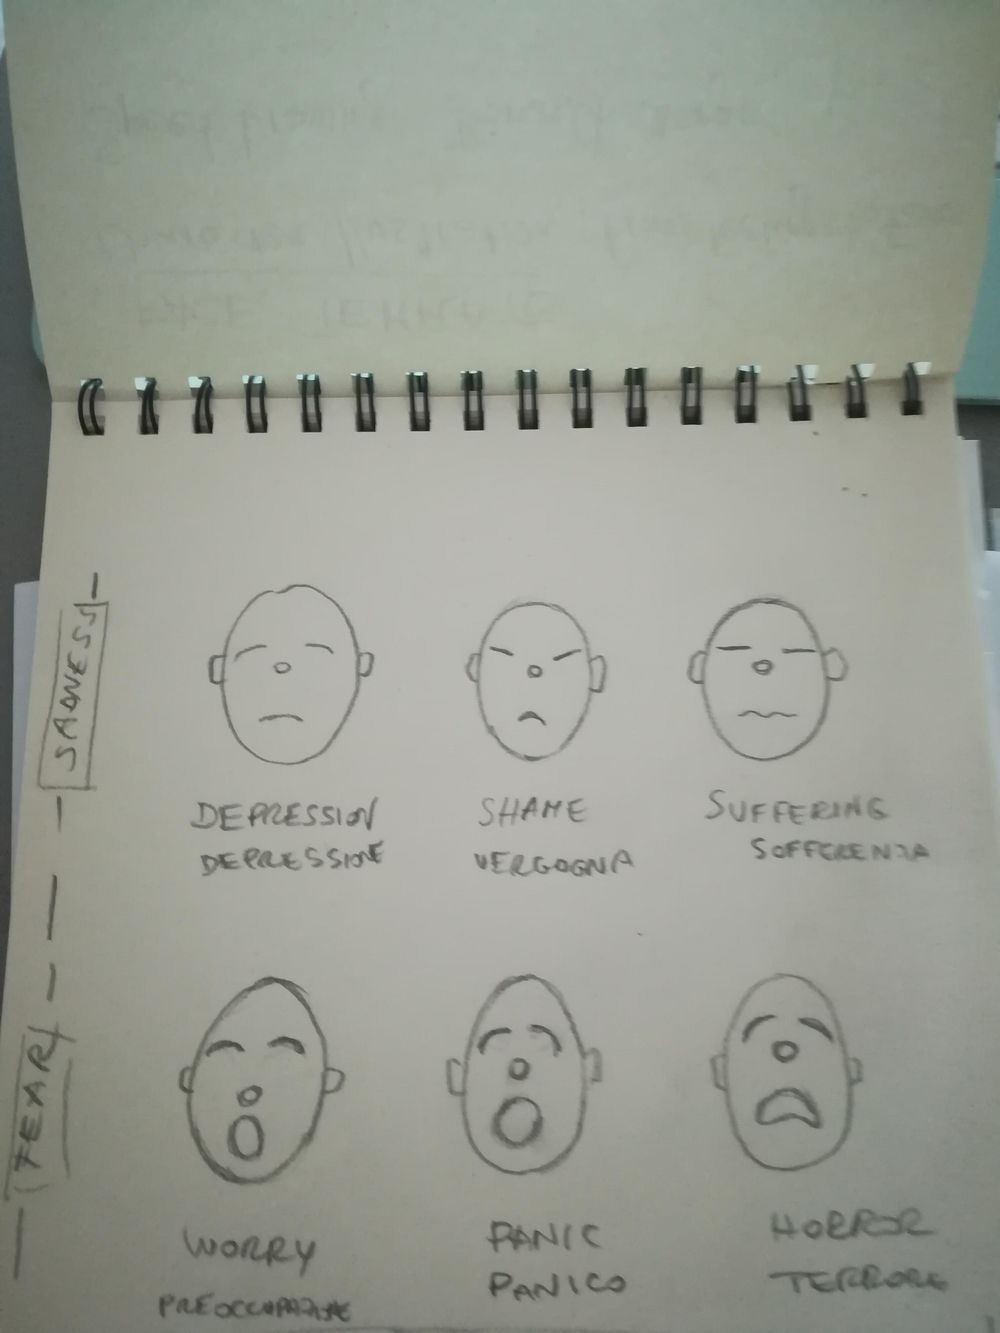 eMOTIONs BY eLENA pENELLO - image 3 - student project